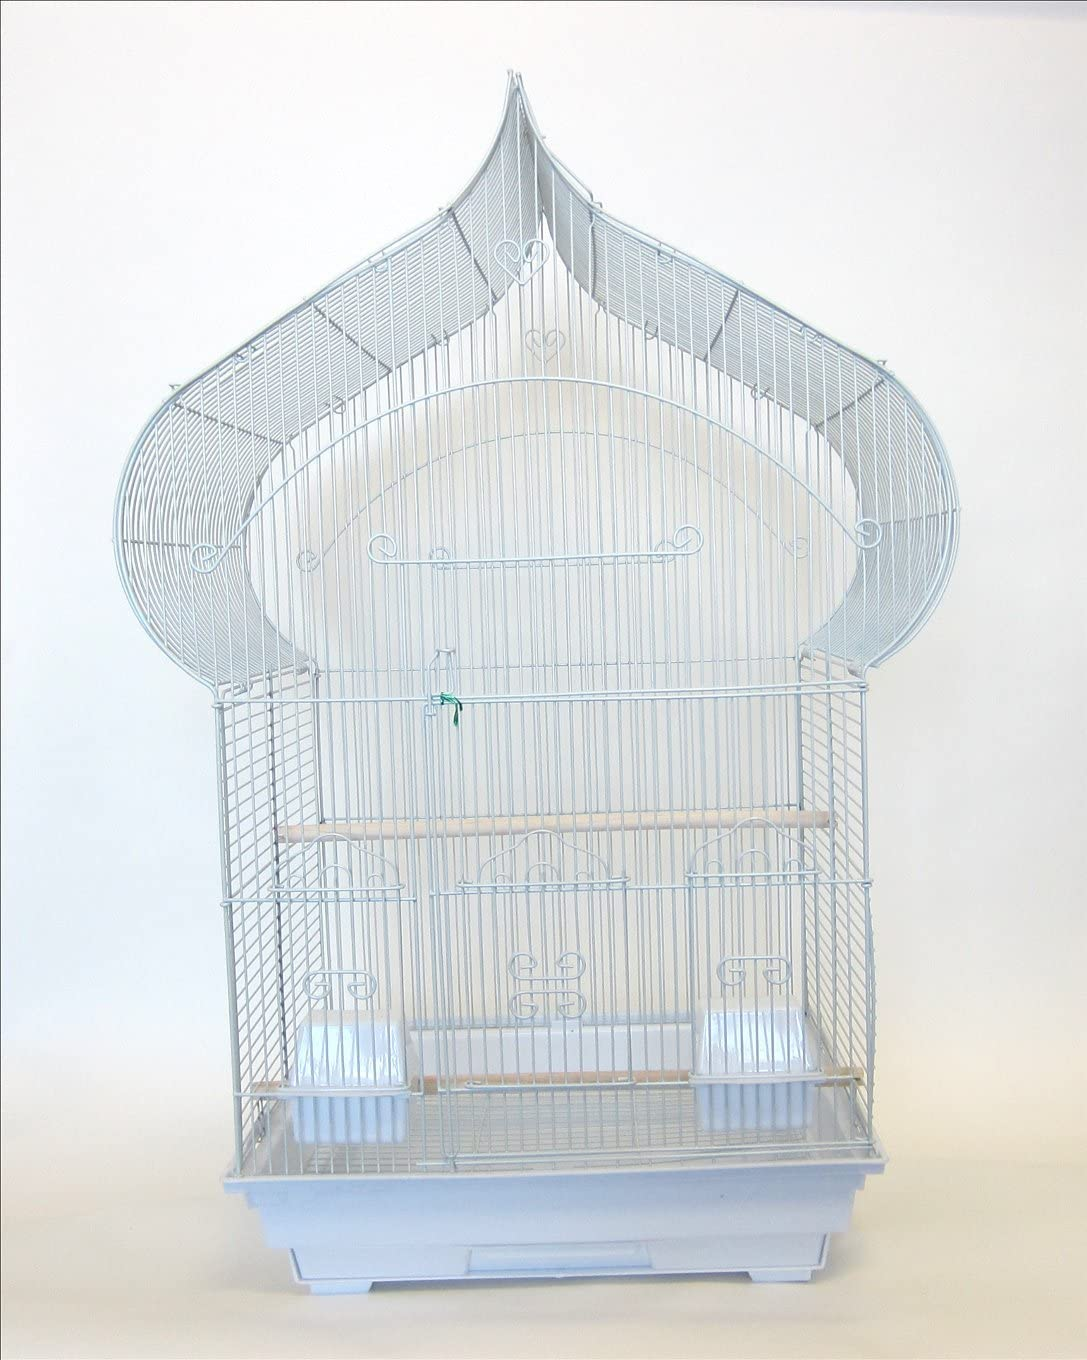 YML 3 8-Inch Bar Spacing Taj Mahal Bird Cage 18-Inch by 14-Inch,White